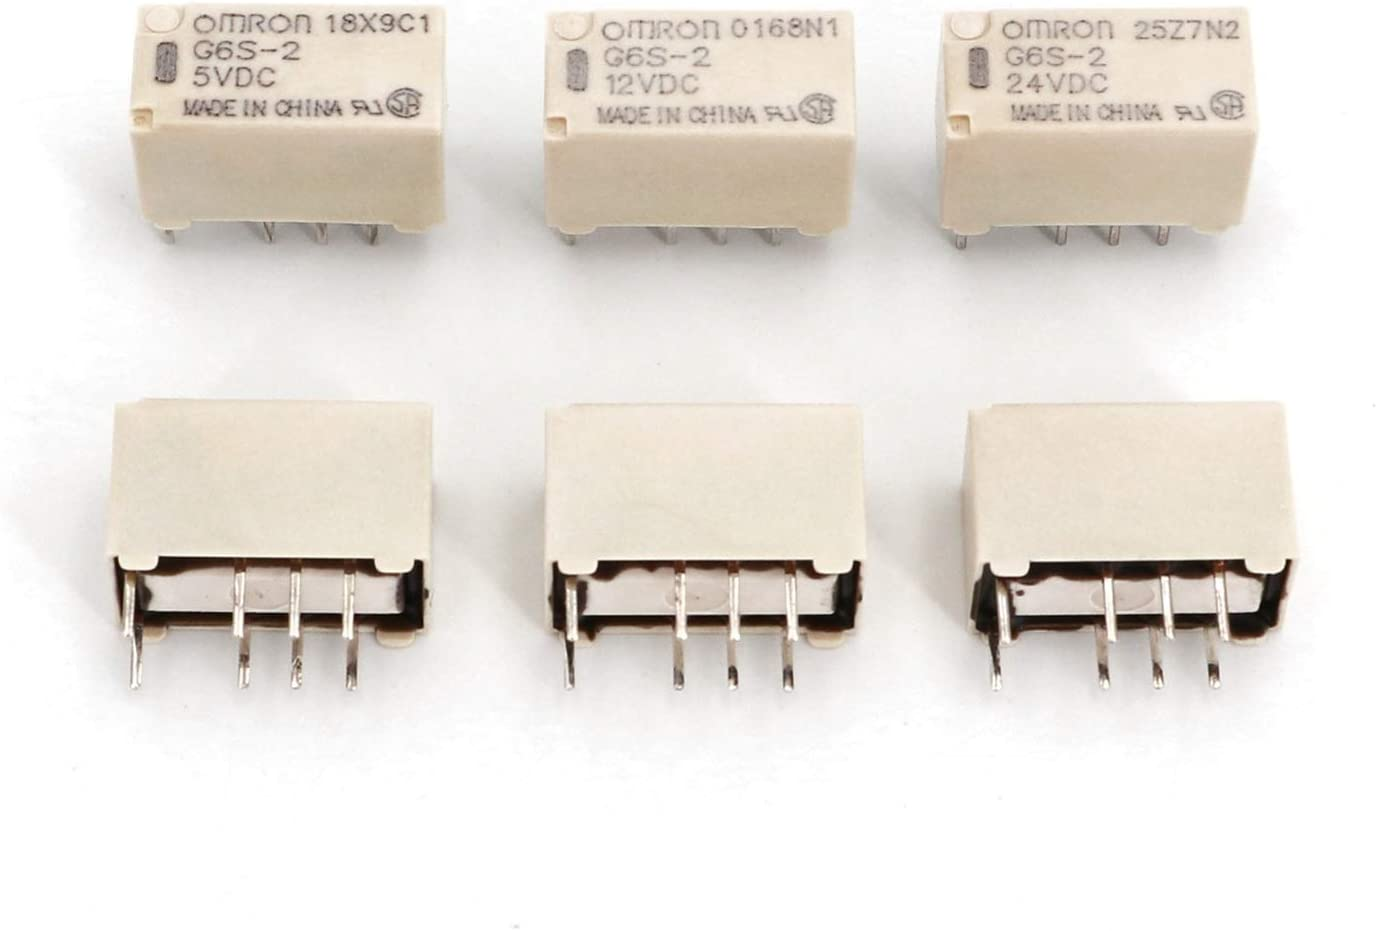 WEIJIAMY Factory outlet Relay 10Pcs G6S-2 DC5V 12V 8Pin 24V 2-Pole PCB Mount DP Ranking TOP15